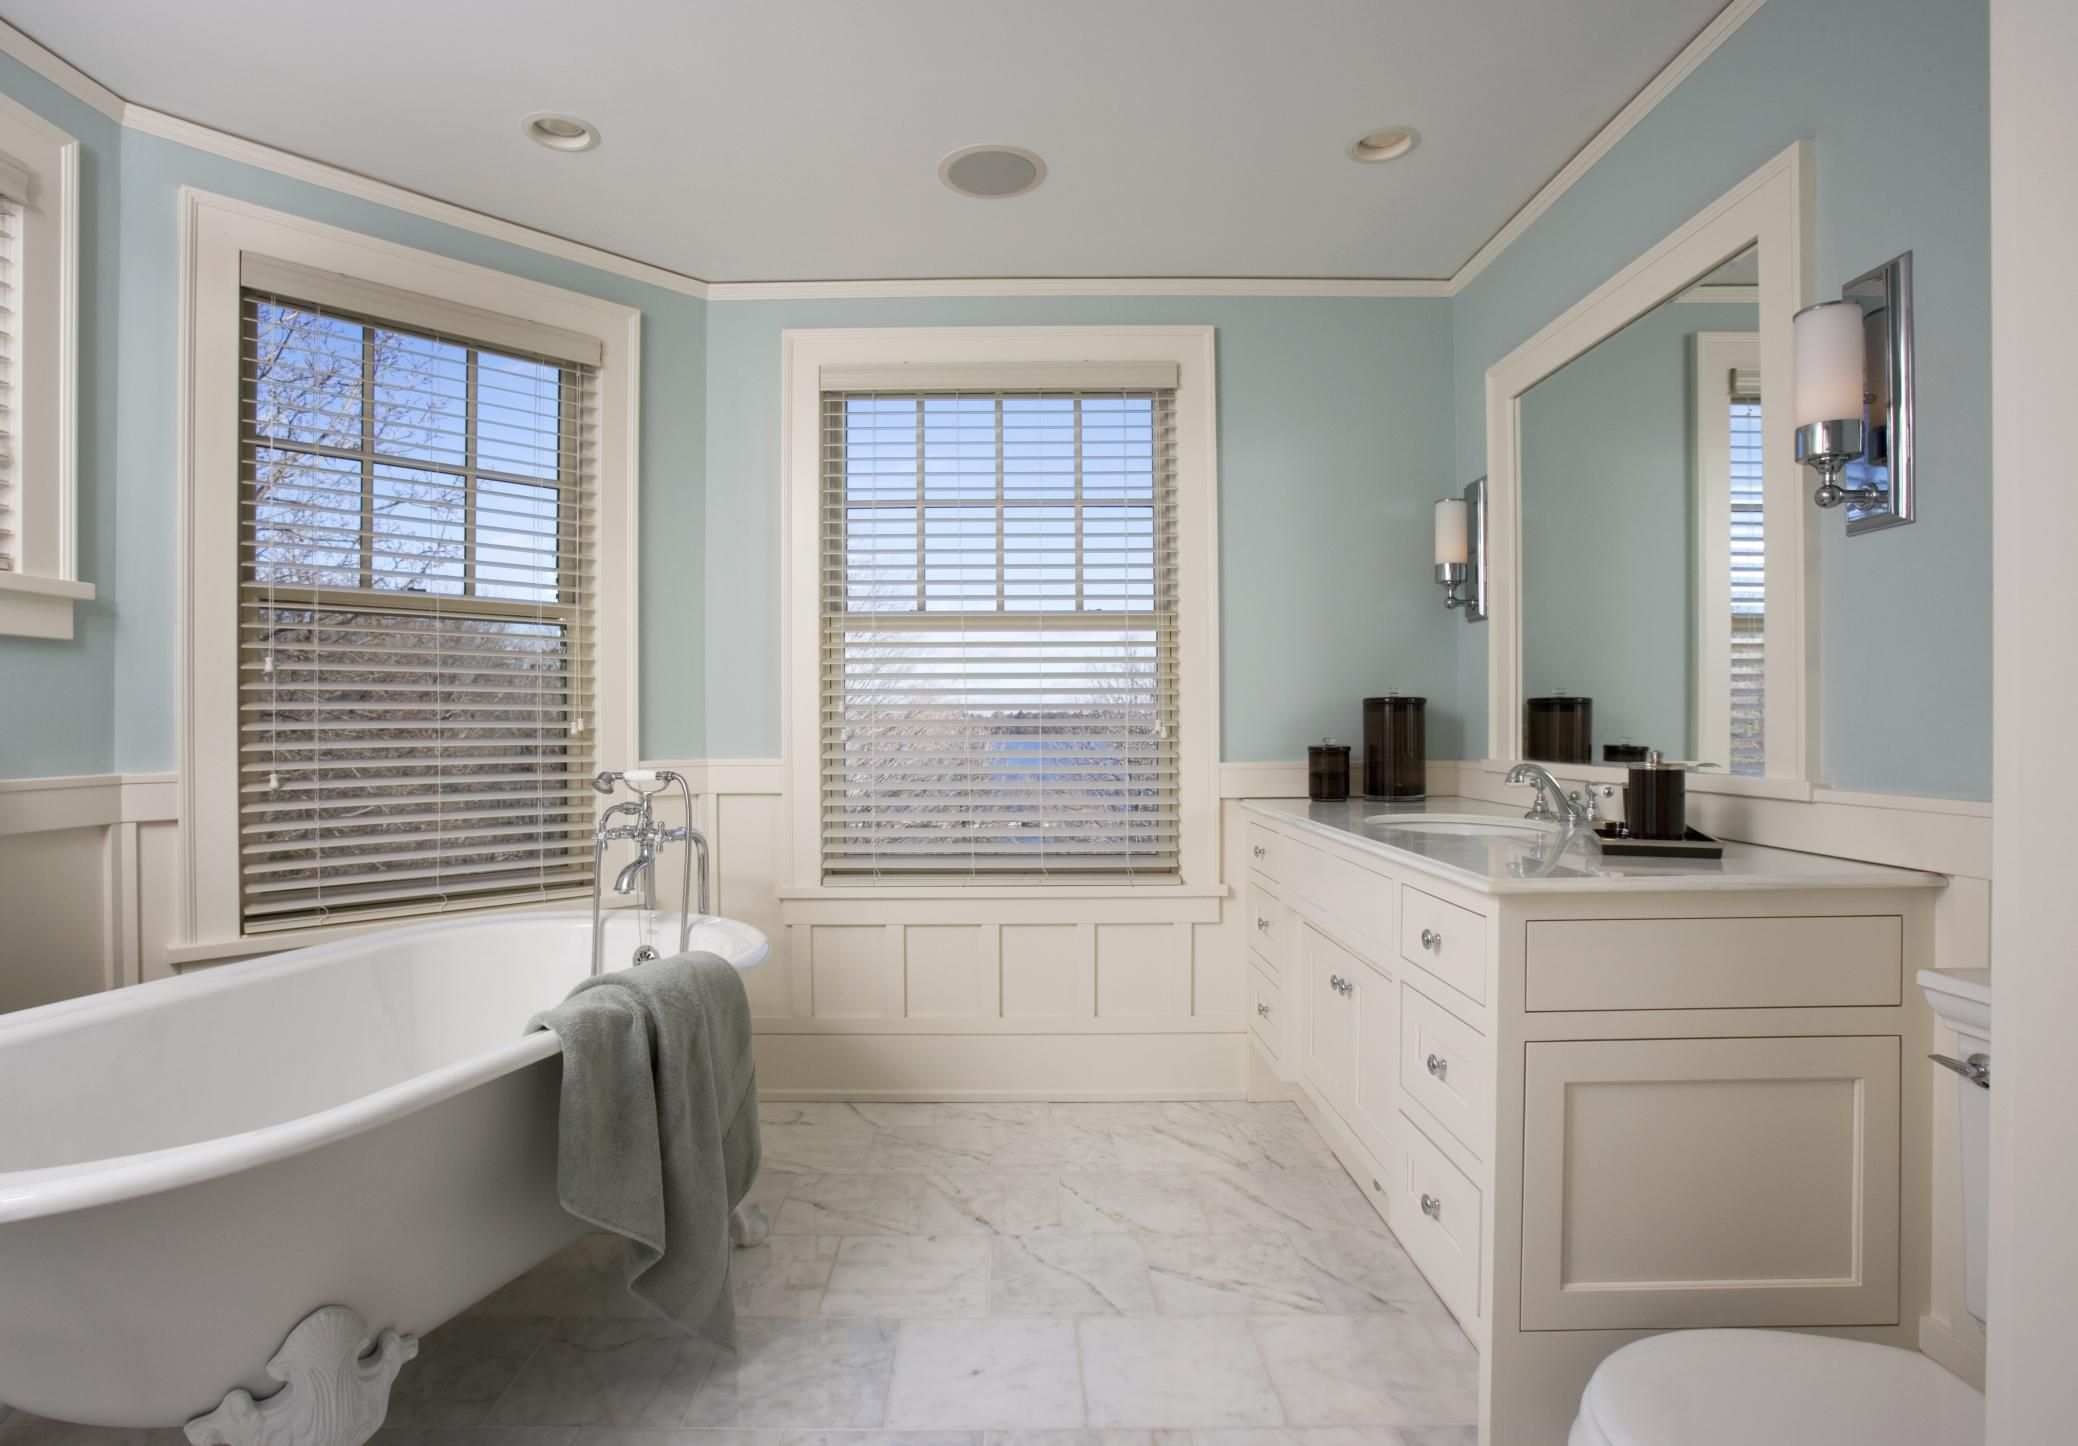 Bathroom Decoration Ideas: Use These Bathroom Decorating Ideas For Your Home